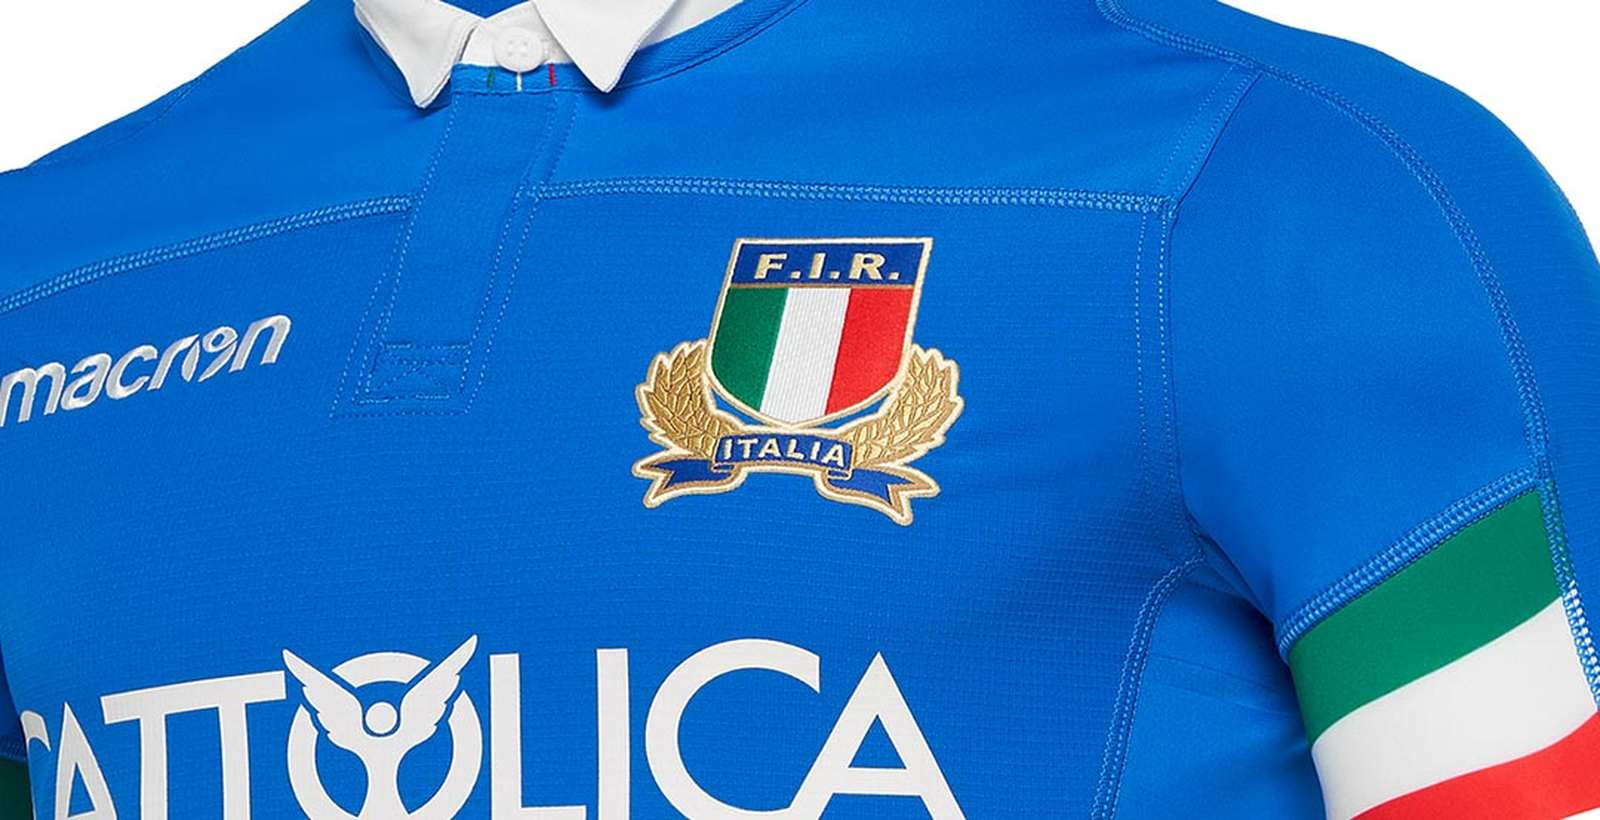 d1a2632a8 Let us take a look at the Macron Italy Rugby kits that were released some  months ago.